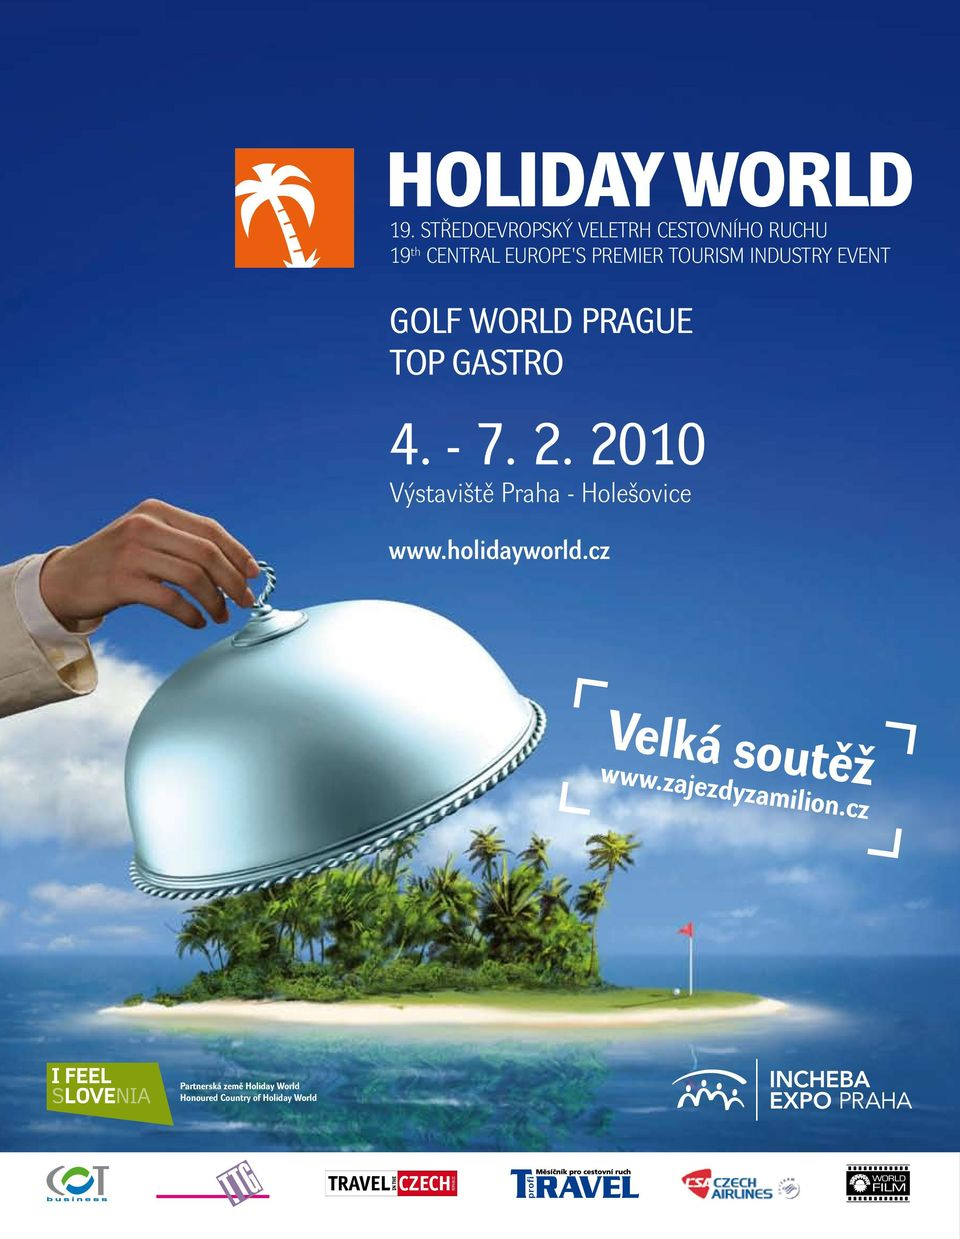 CENTRAL EUROPE'S PREMIER TOURISM INDUSTRY EVENT